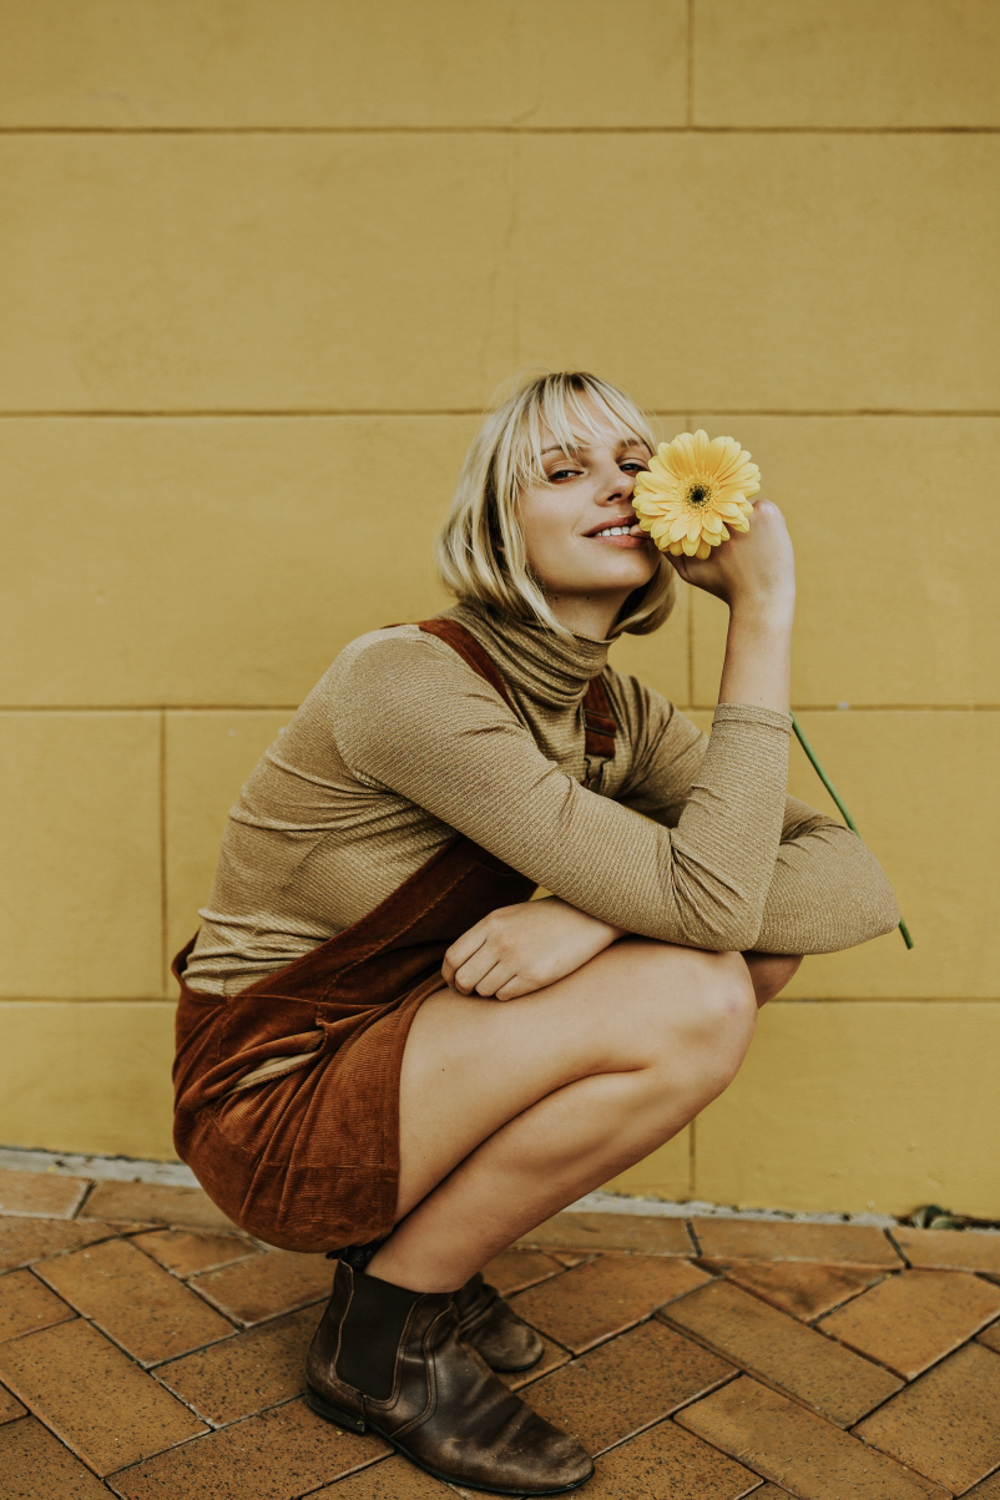 Iris Hall poses with yellow flower in front of colourful wall du